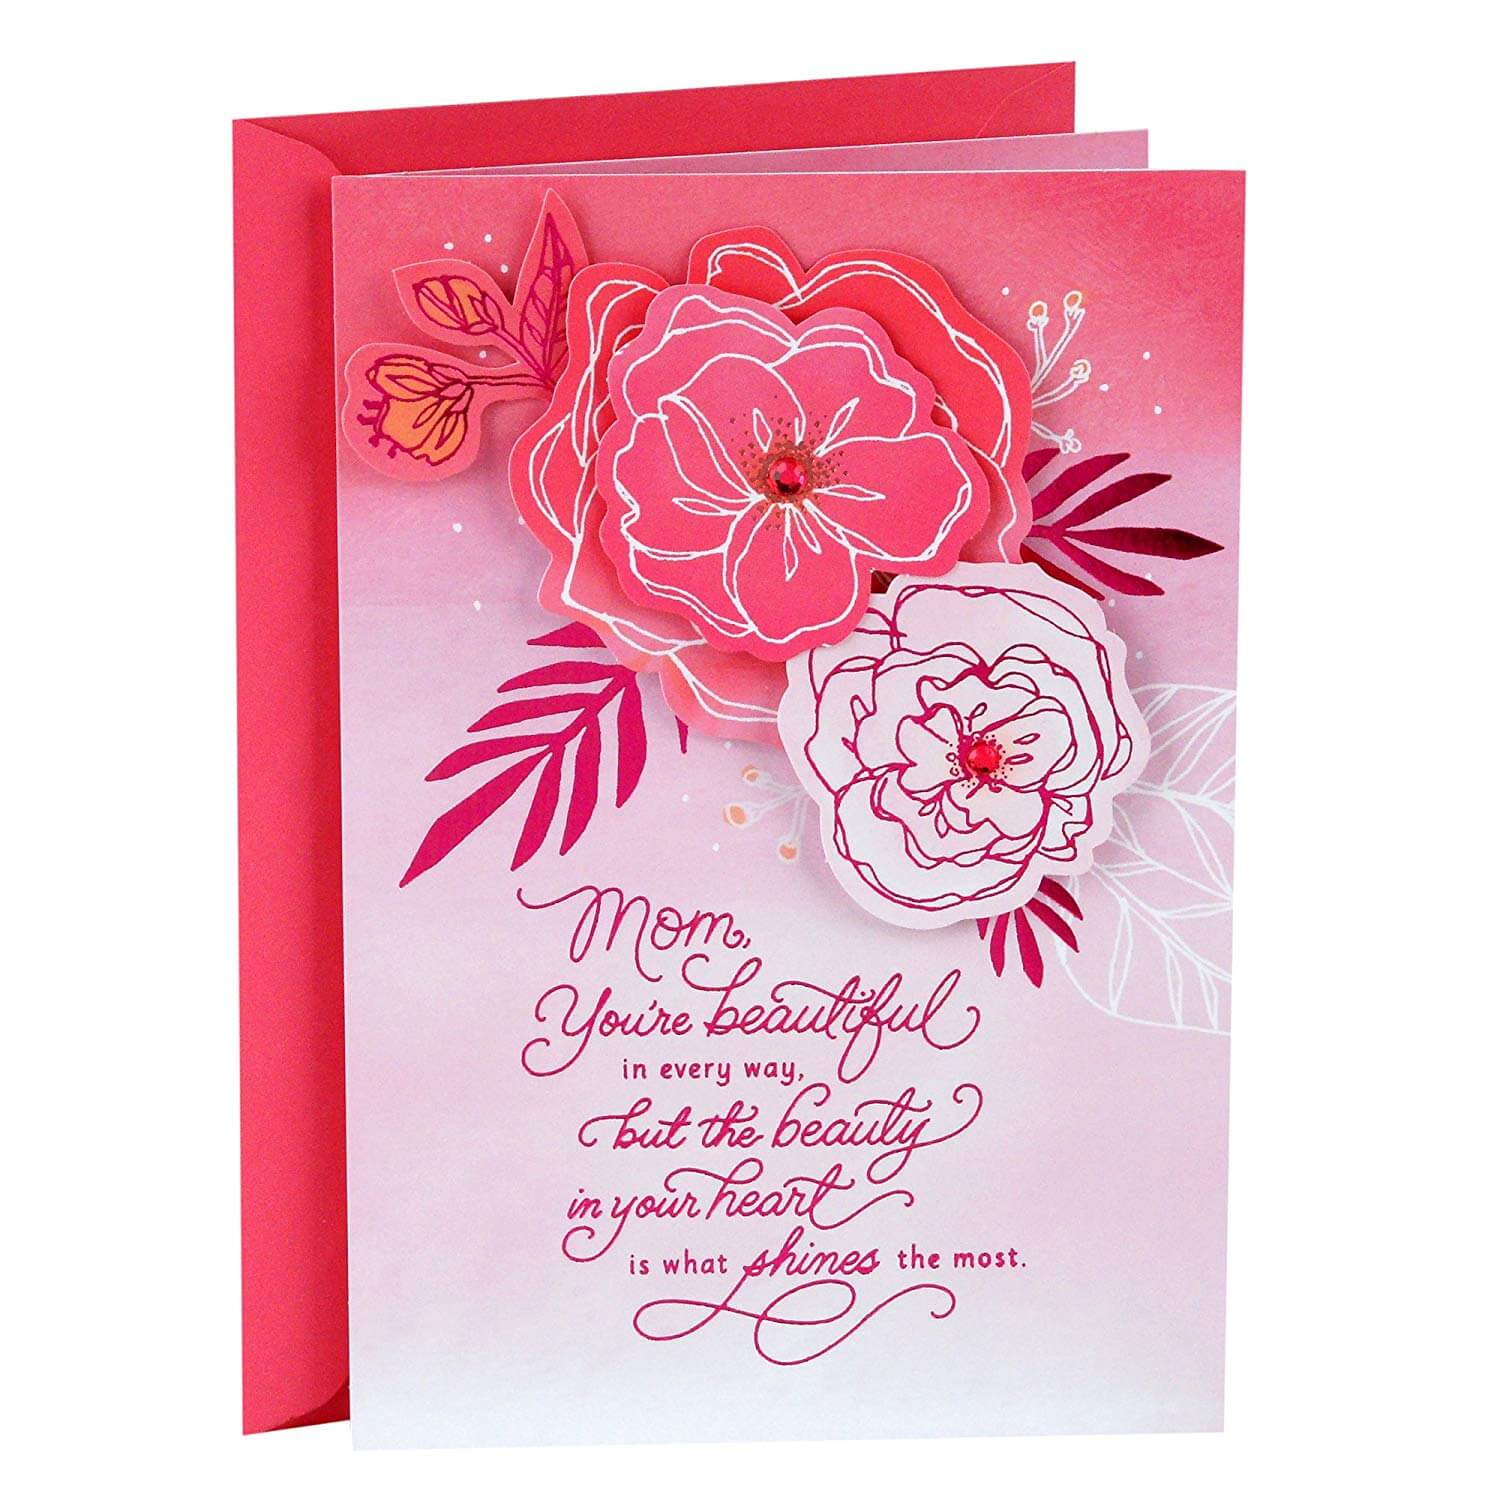 Mothers Day Card Messages_uptodatedaily